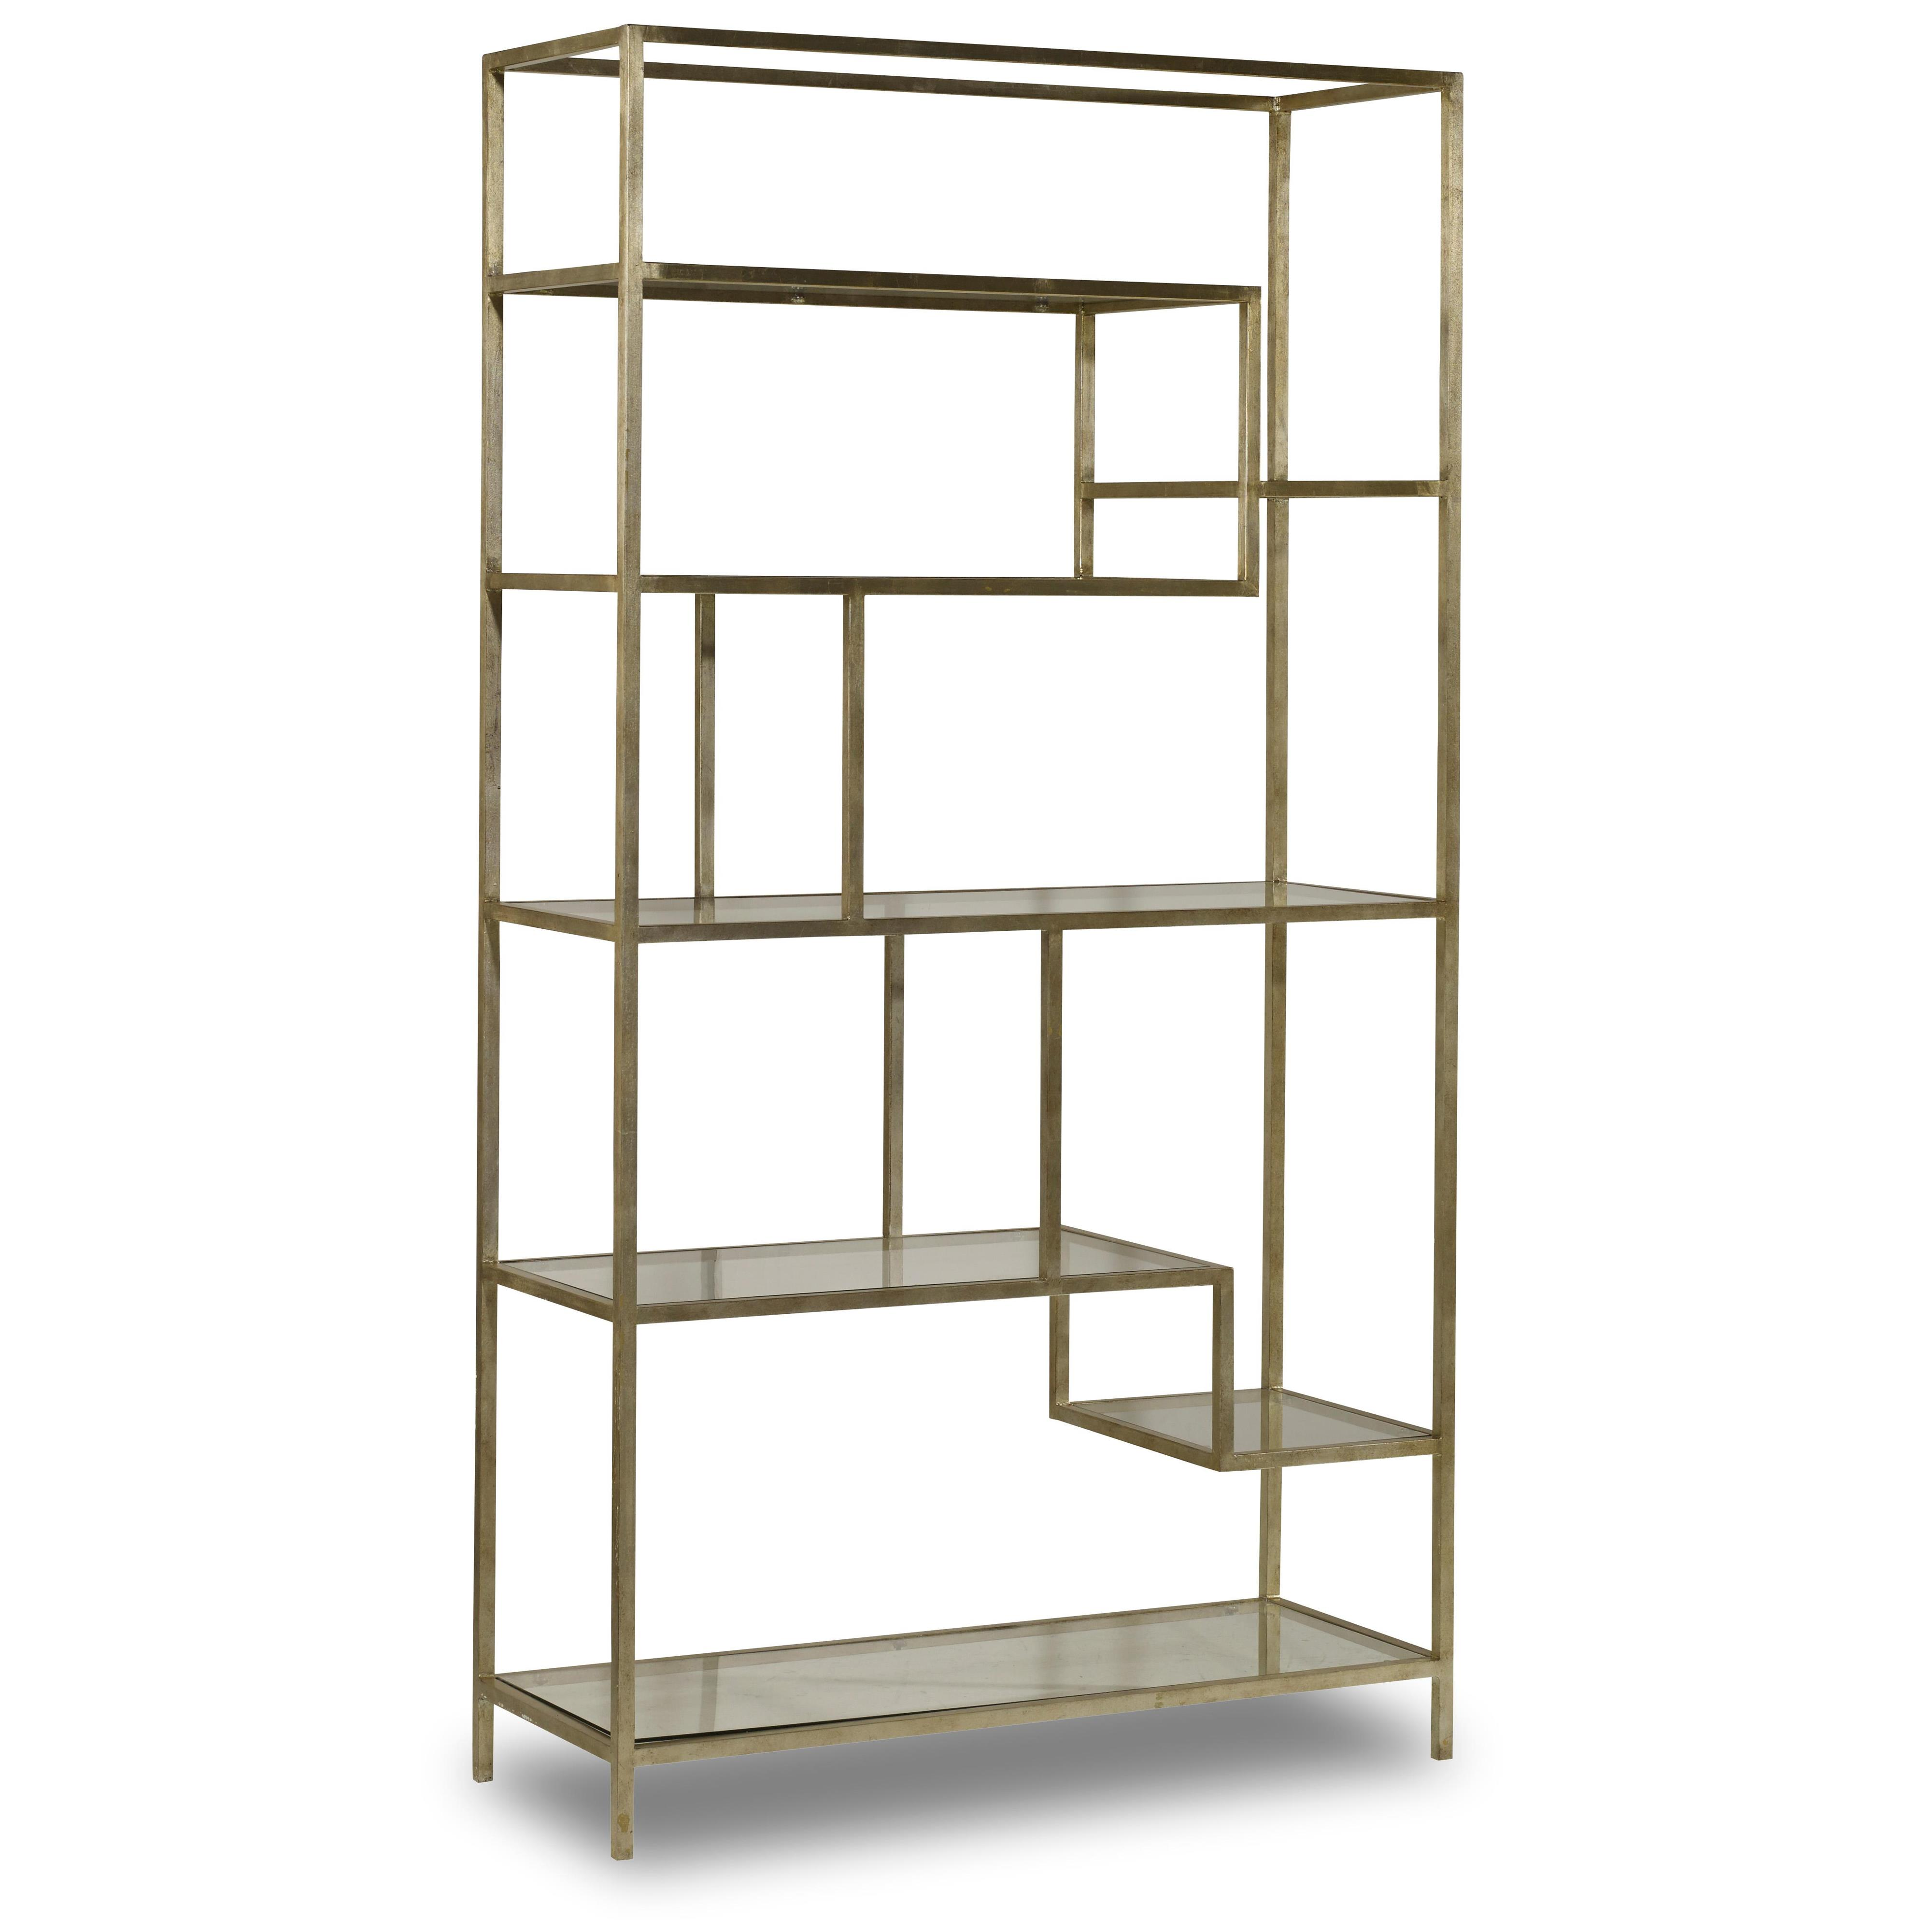 Living Room Accents Etagere by Hooker Furniture at Baer's Furniture